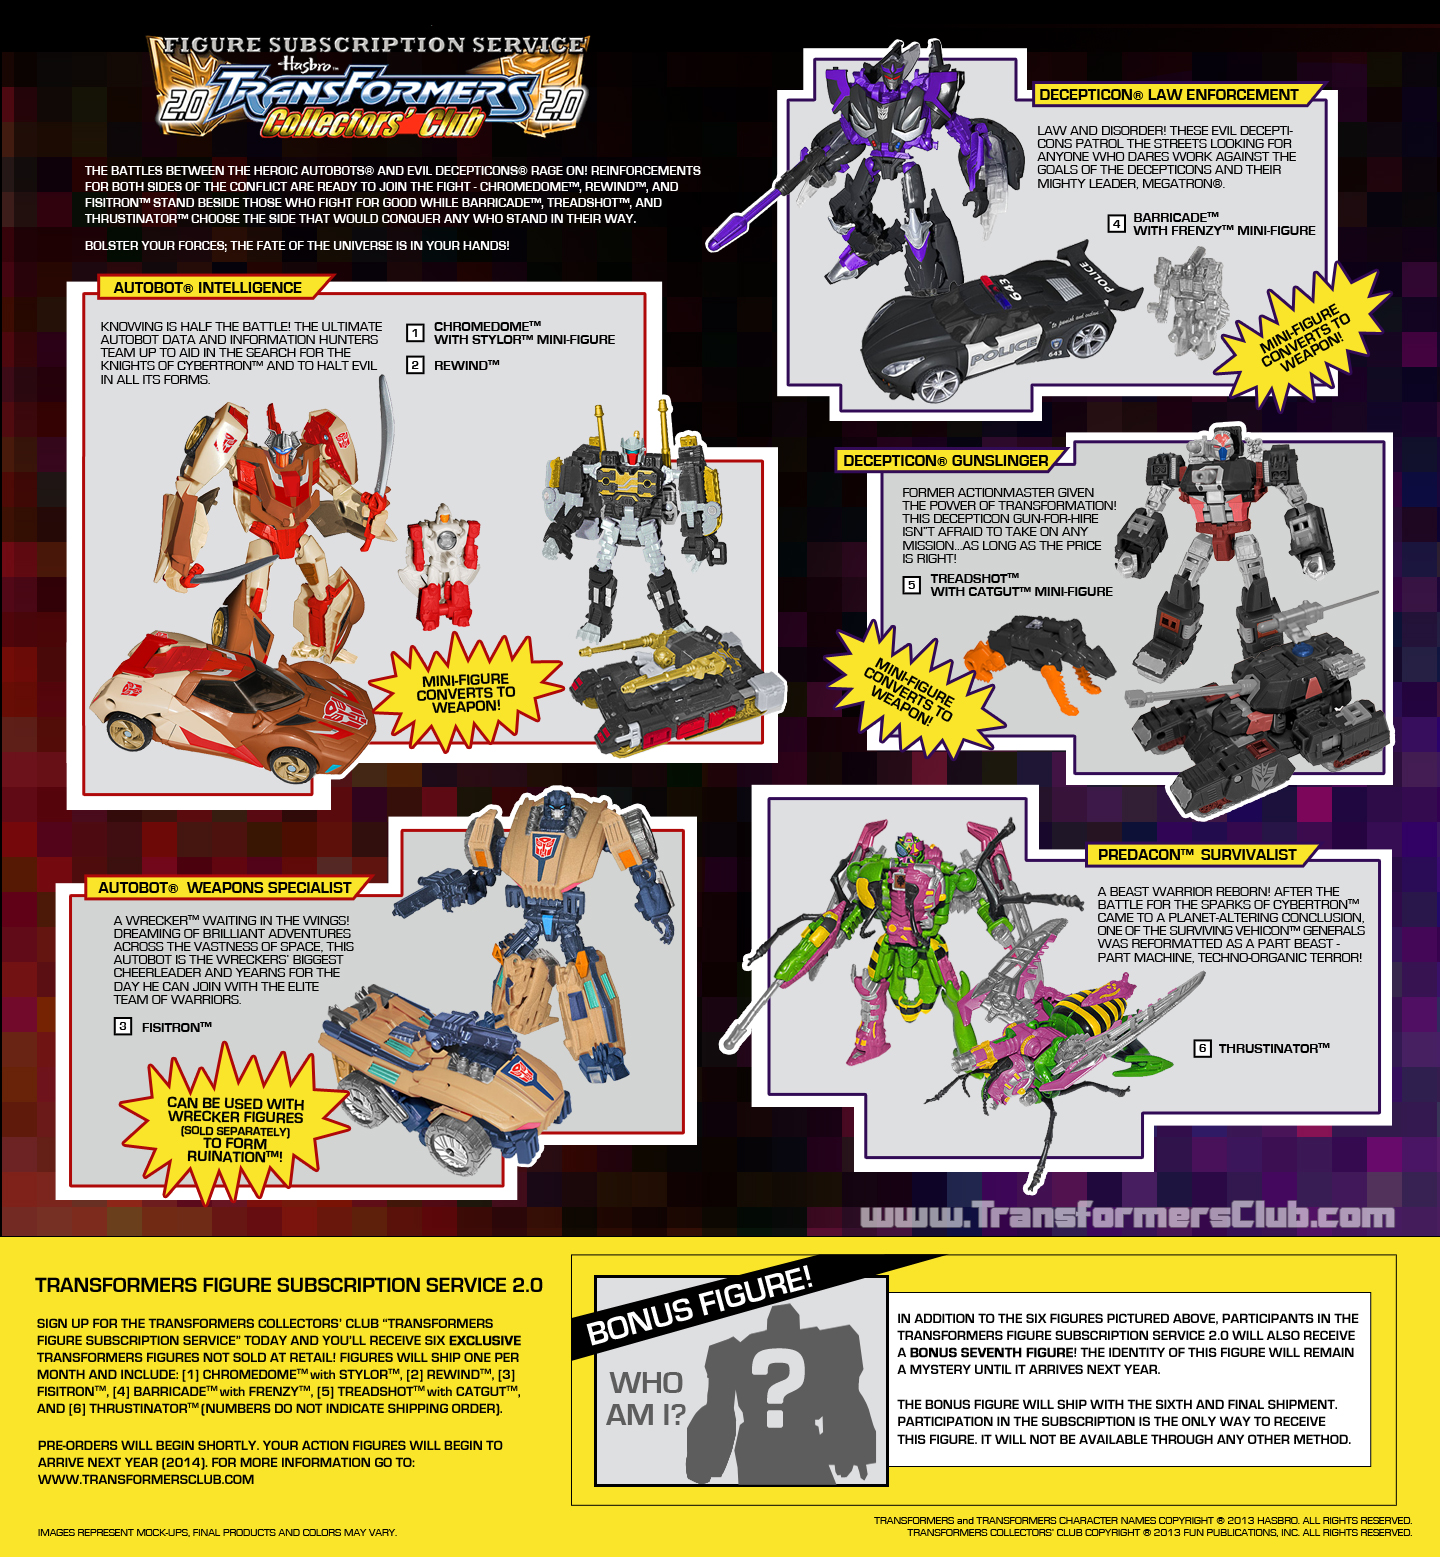 Jouets Transformers exclusifs: Collectors Club   TFSS - TF Subscription Service - Page 8 Tfss_ad_1380224380